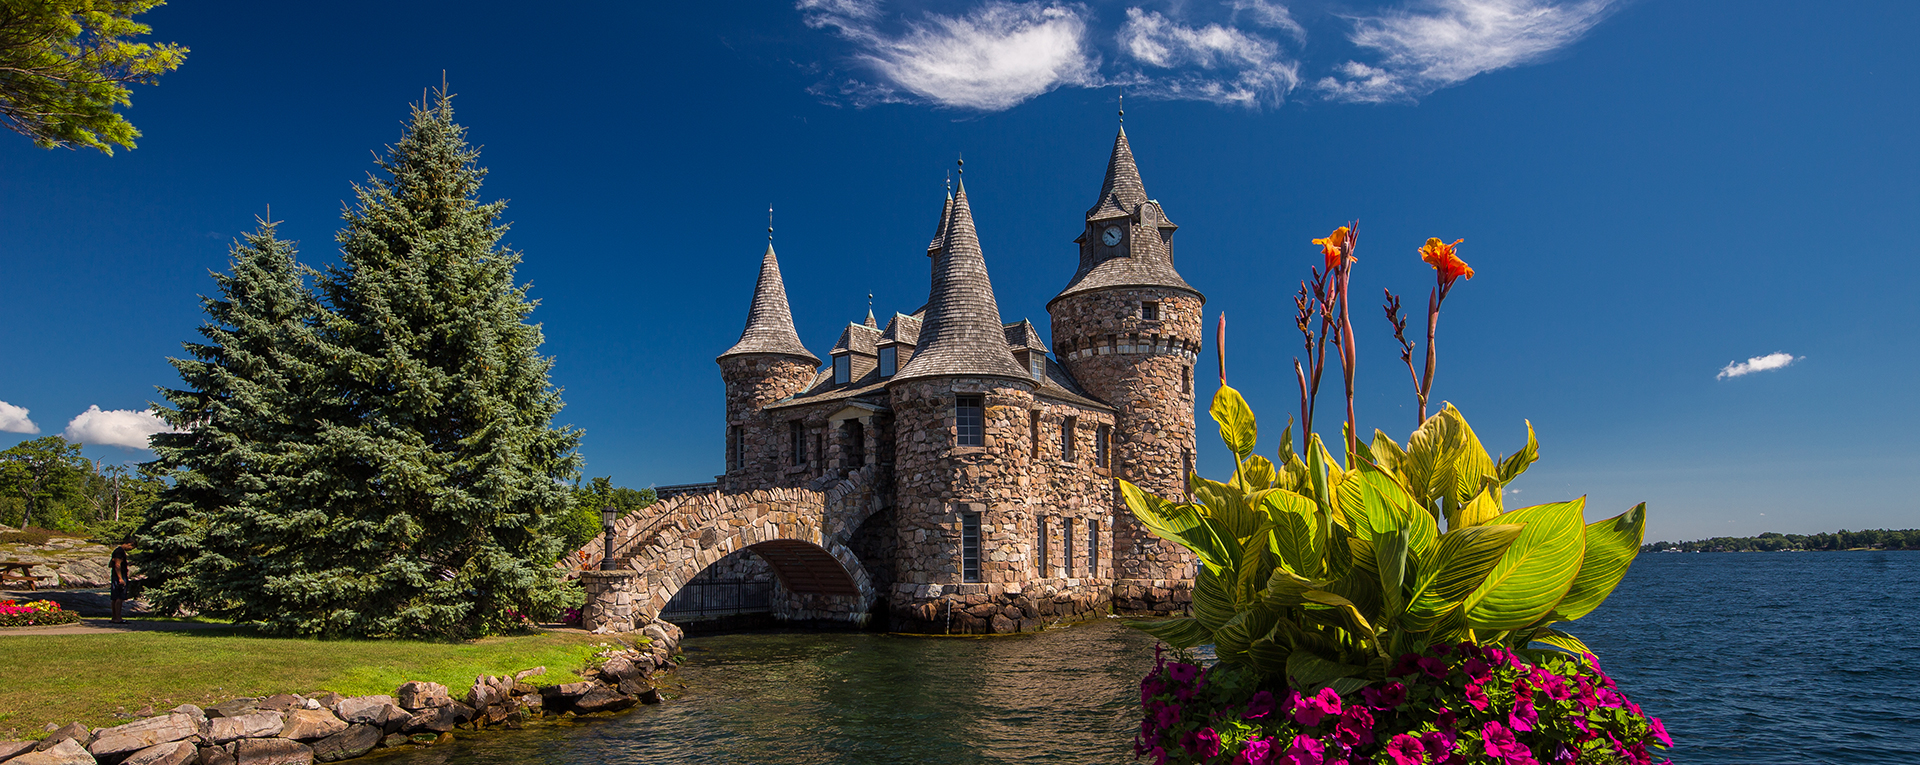 Boldt_Castle_Thousand_Islands_23_a9ed8e51-8387-490c-9ef6-e80bd2695b0f.jpg